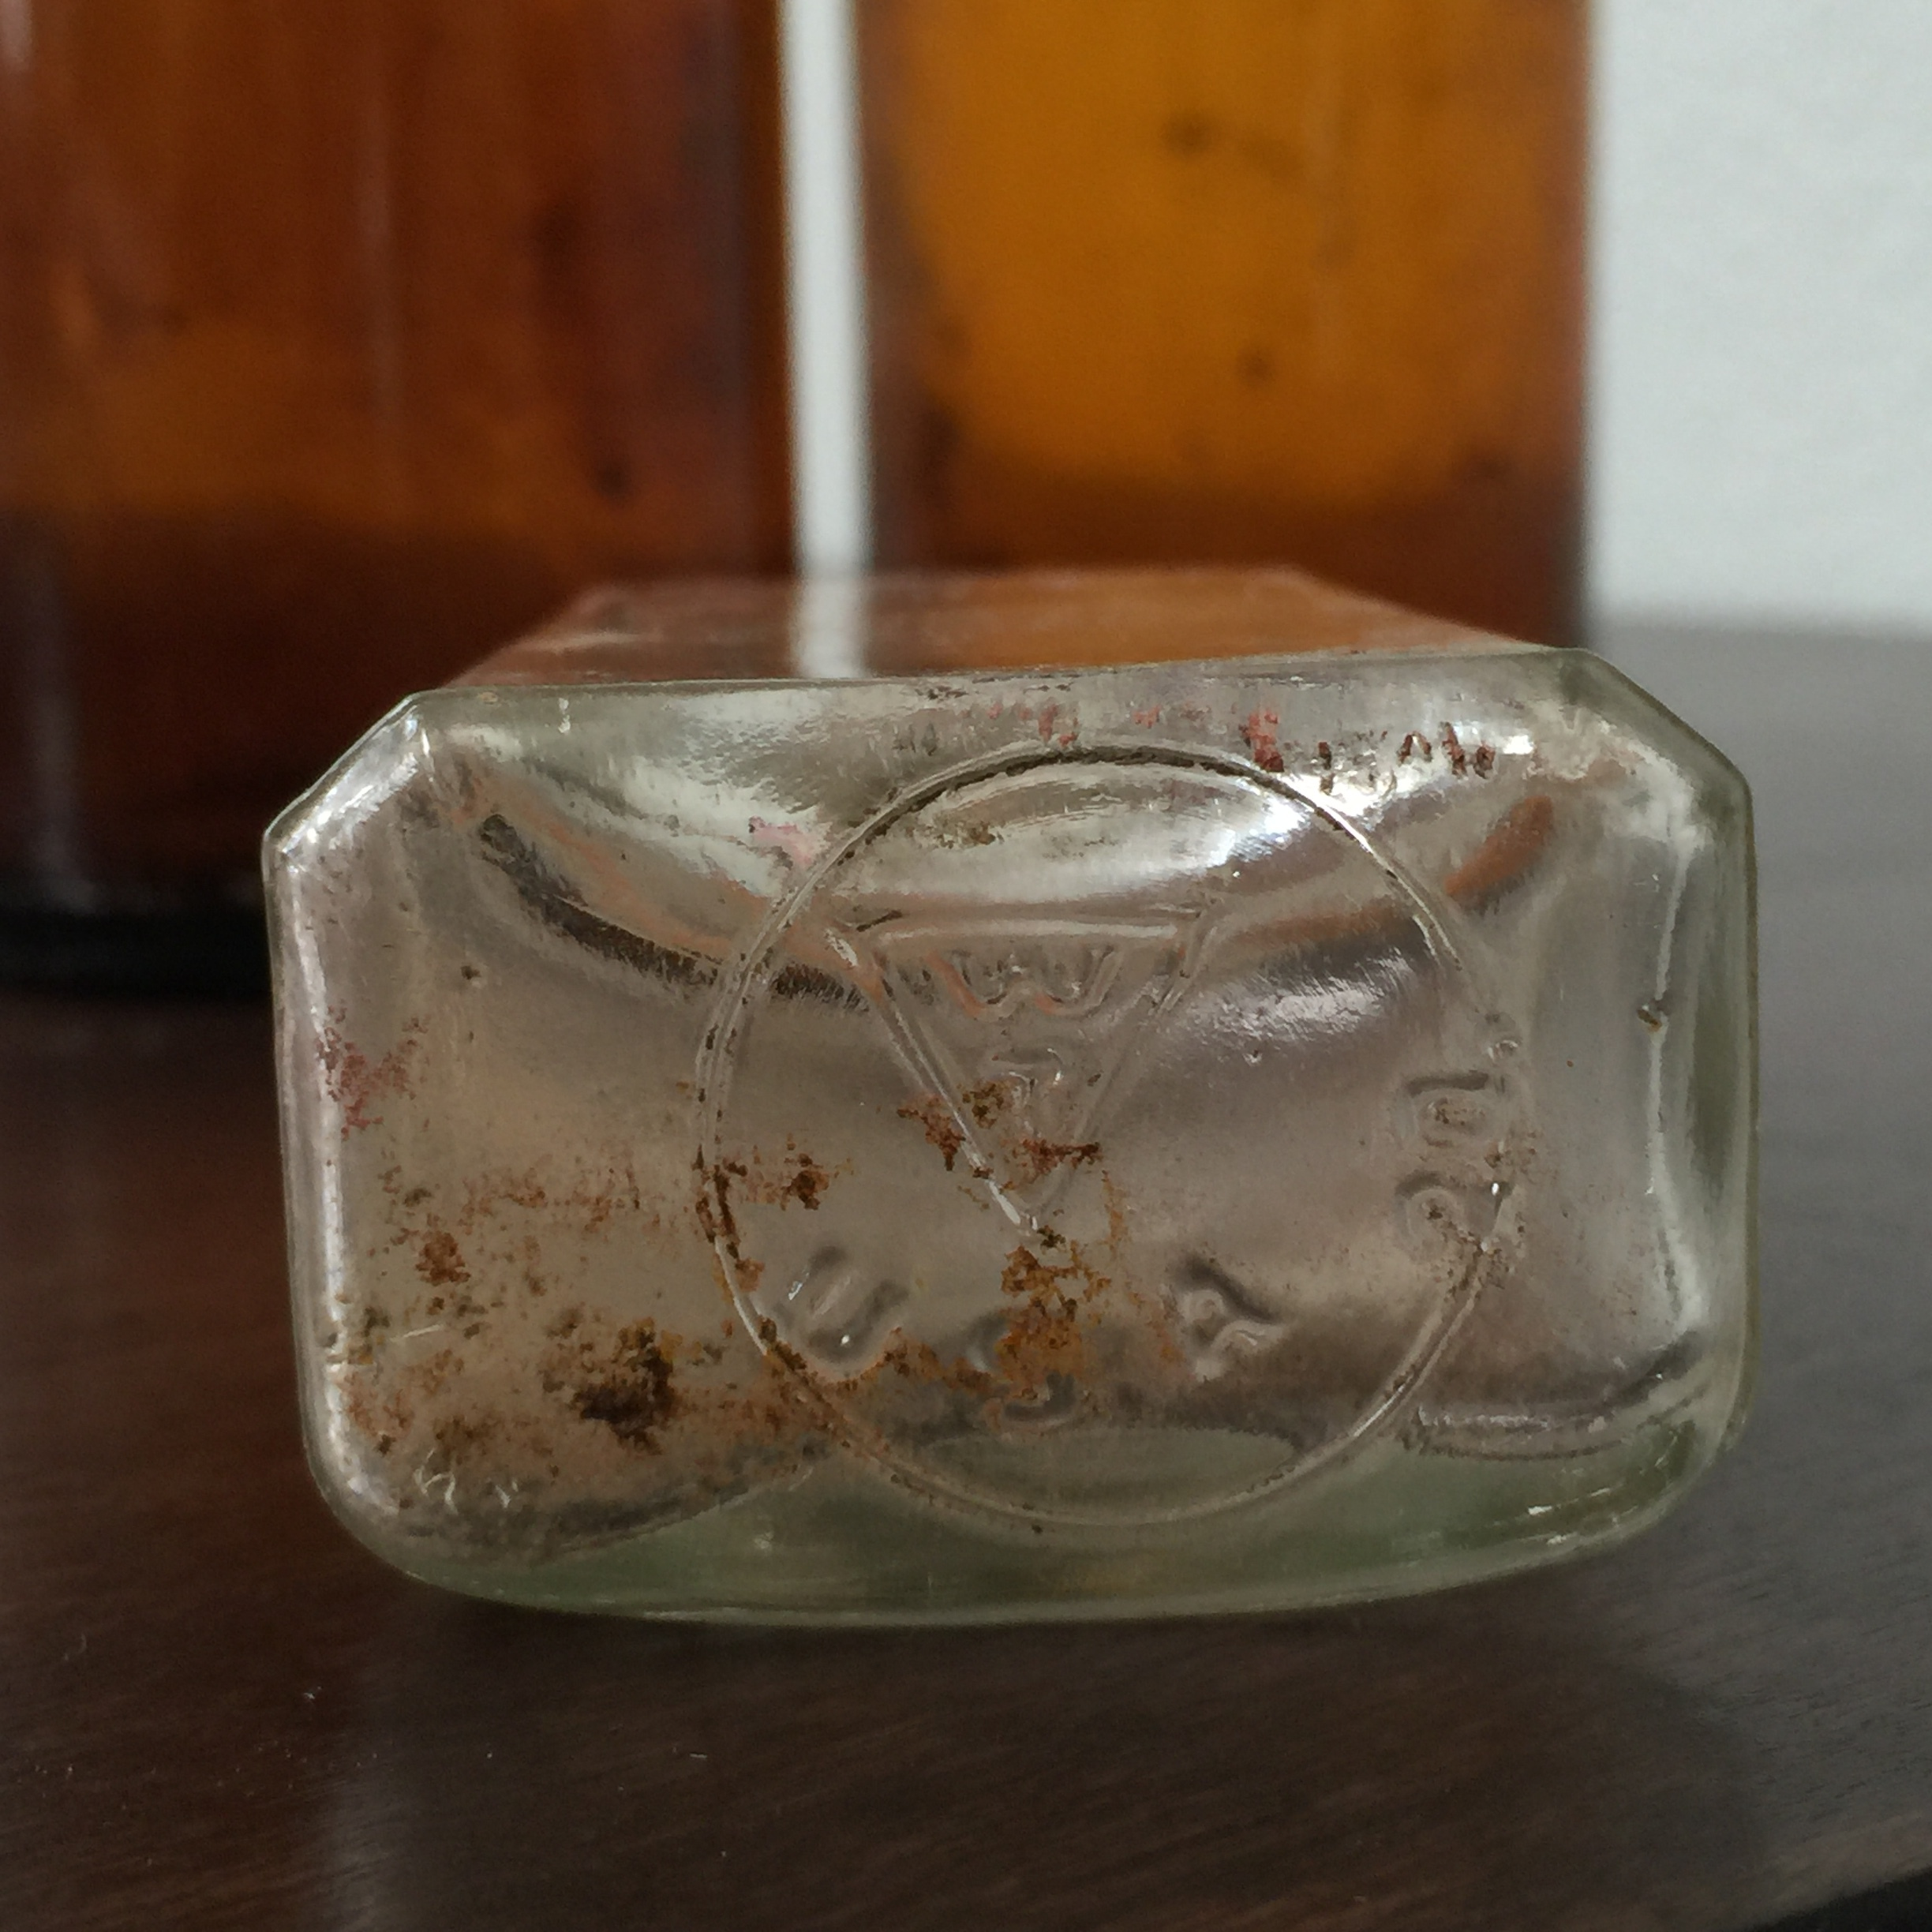 The base of the smaller, clear glass bottle with imprints indicating when and where it was manufactured.